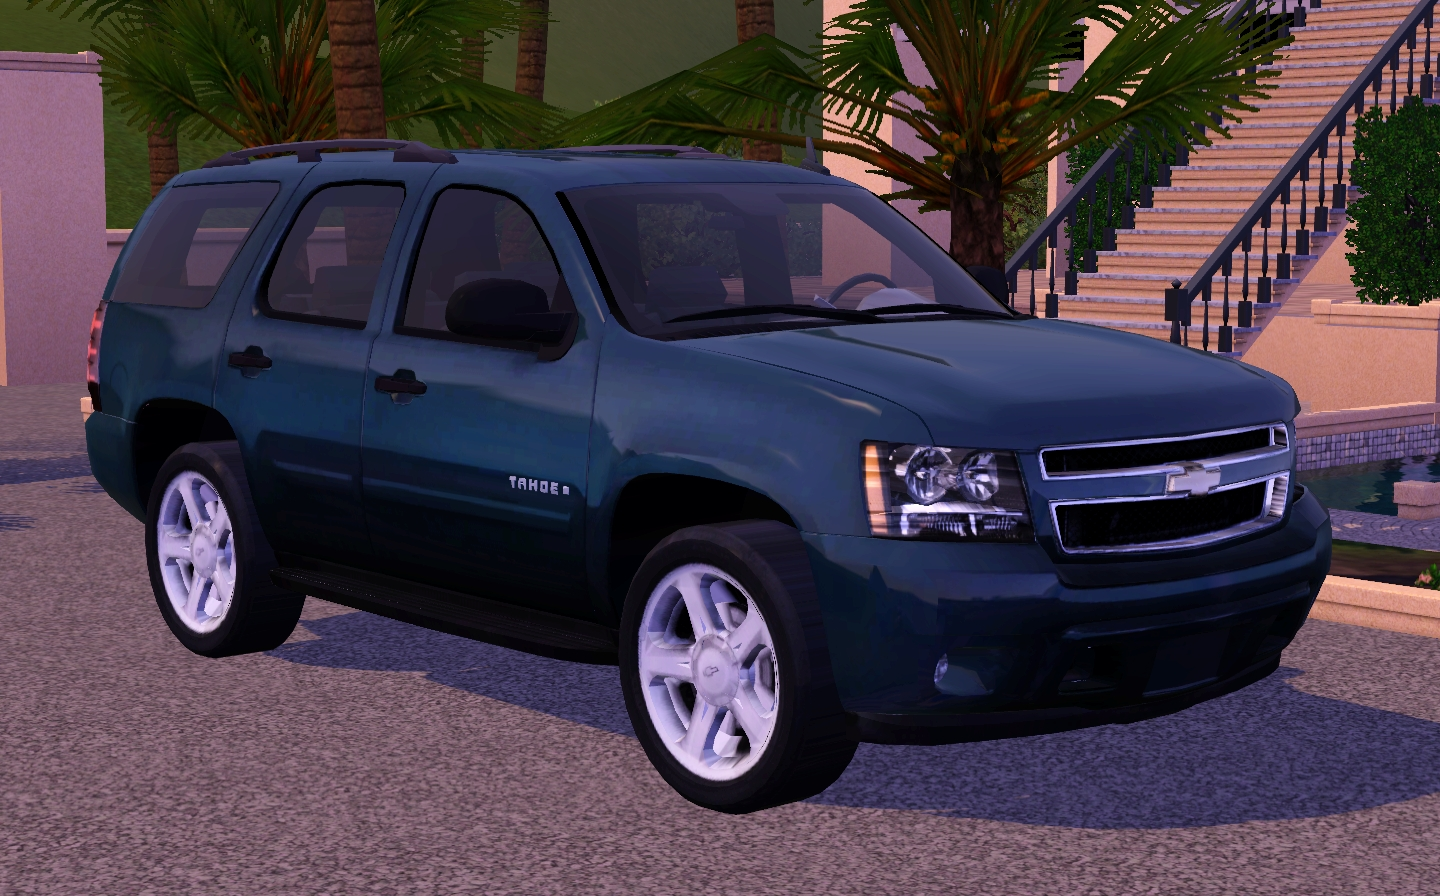 2009 Chevrolet Tahoe by Fresh-Prince